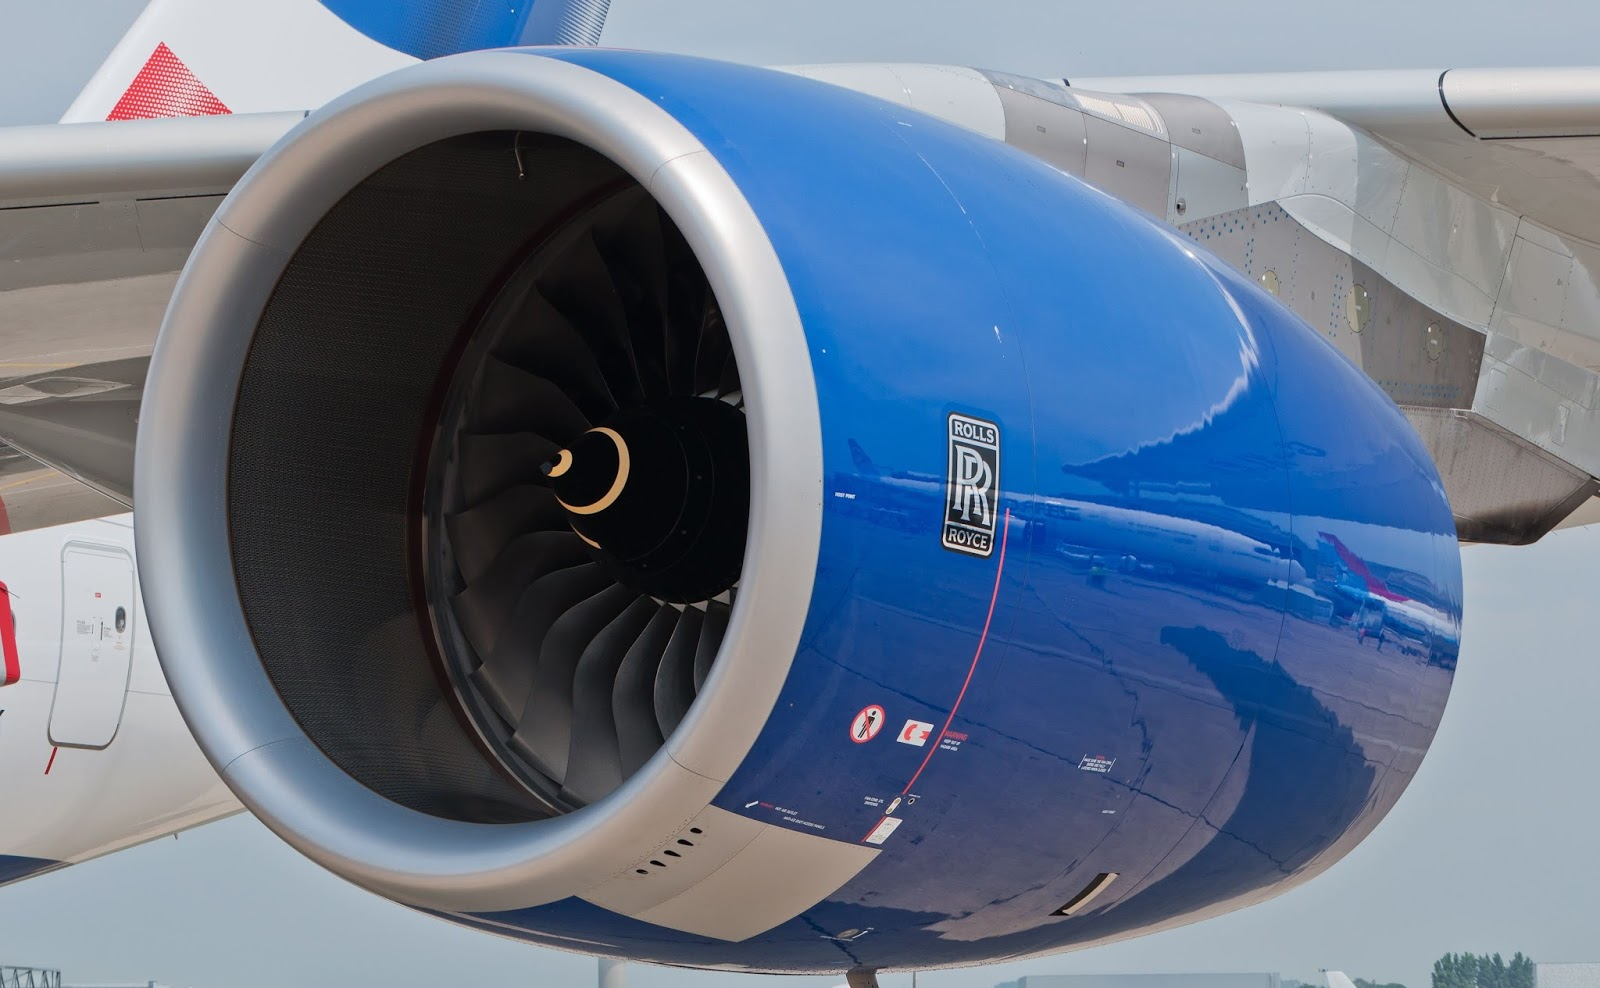 Rolls-Royce Trent 1000 Expansion In Asian Market